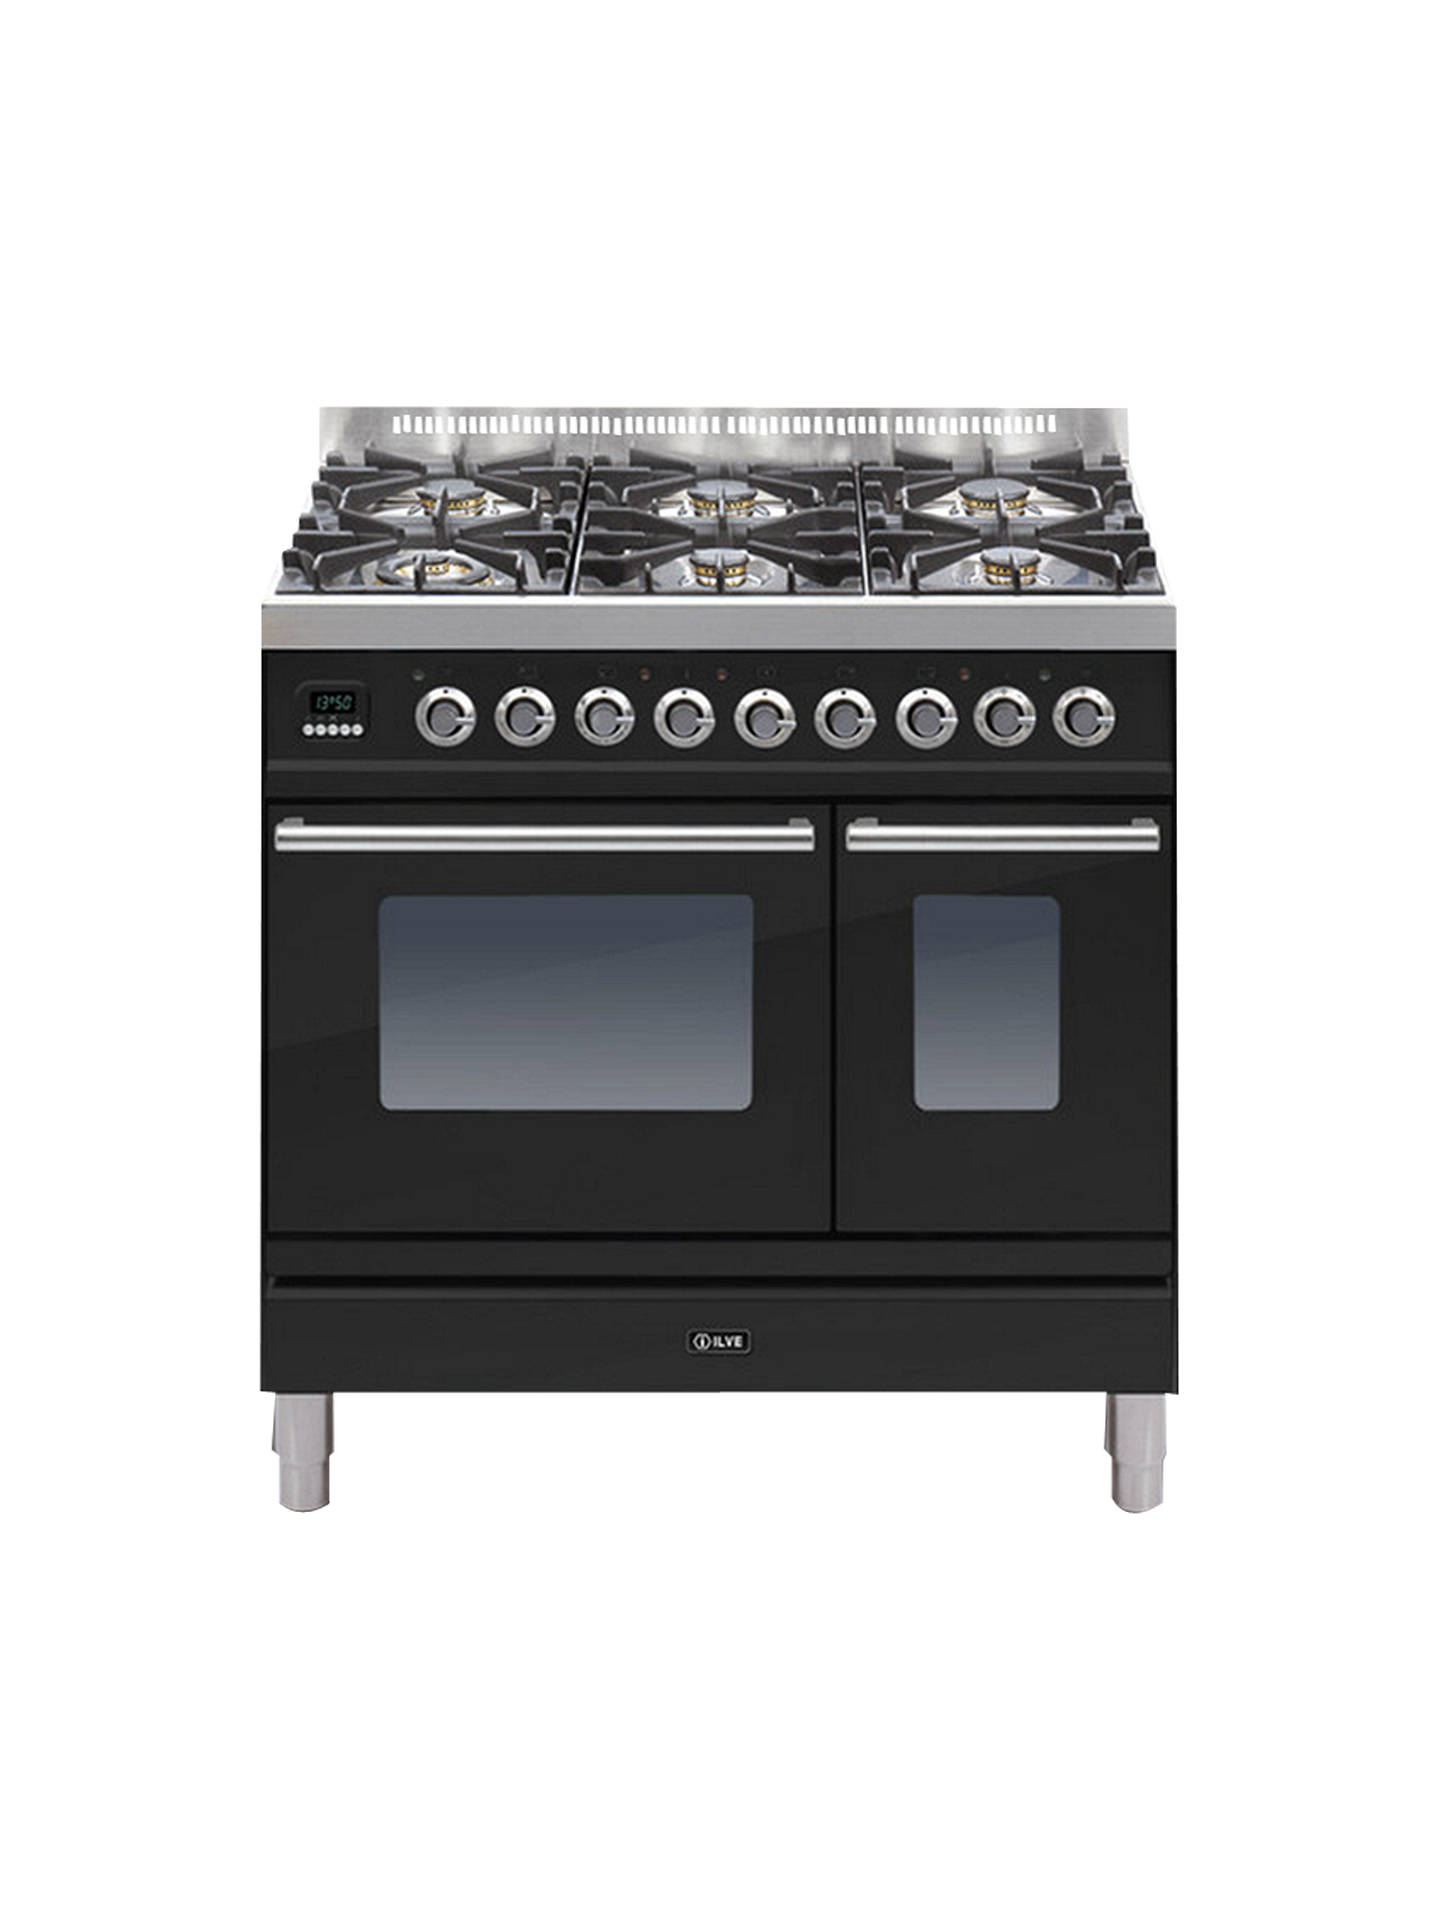 Buy ILVE PDW906E3/N Roma Freestanding Dual Fuel Range Cooker, Black Online at johnlewis.com